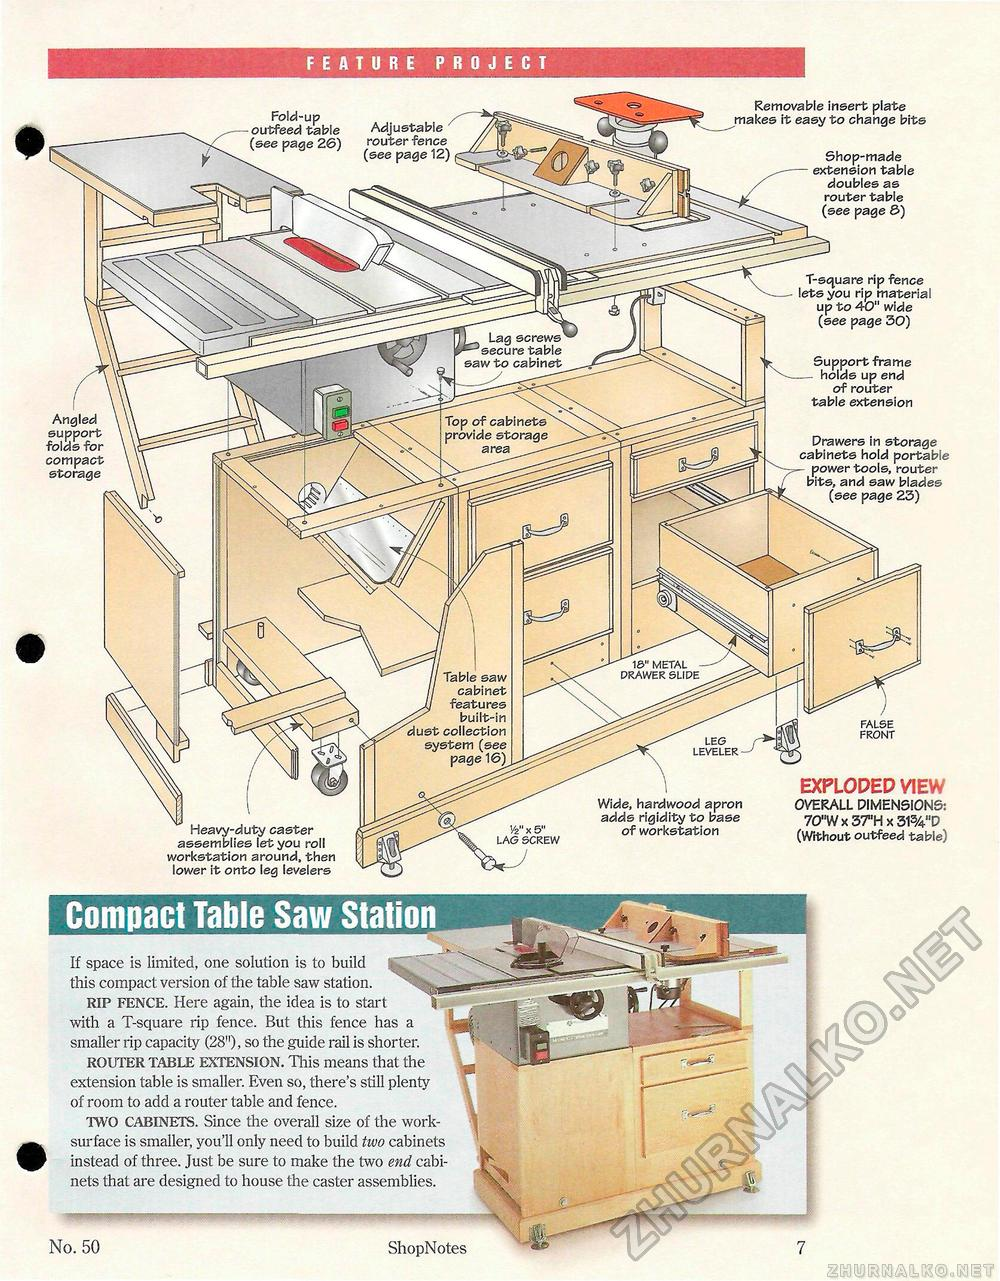 50 table saw workstation 7 for Table 6 4 cobol conversion project schedule